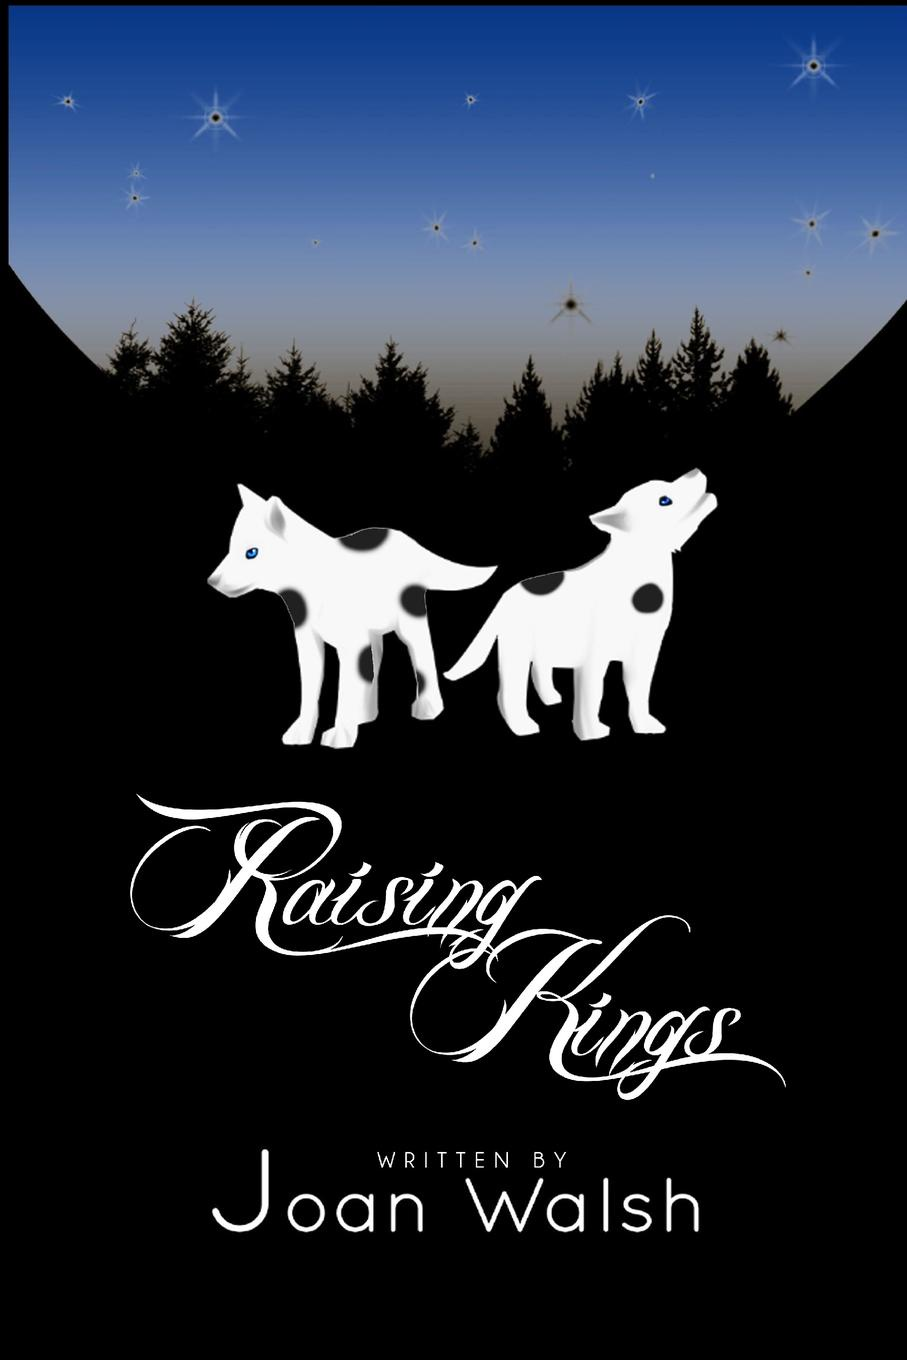 Joan Walsh Raising Kings wilds of the wolf